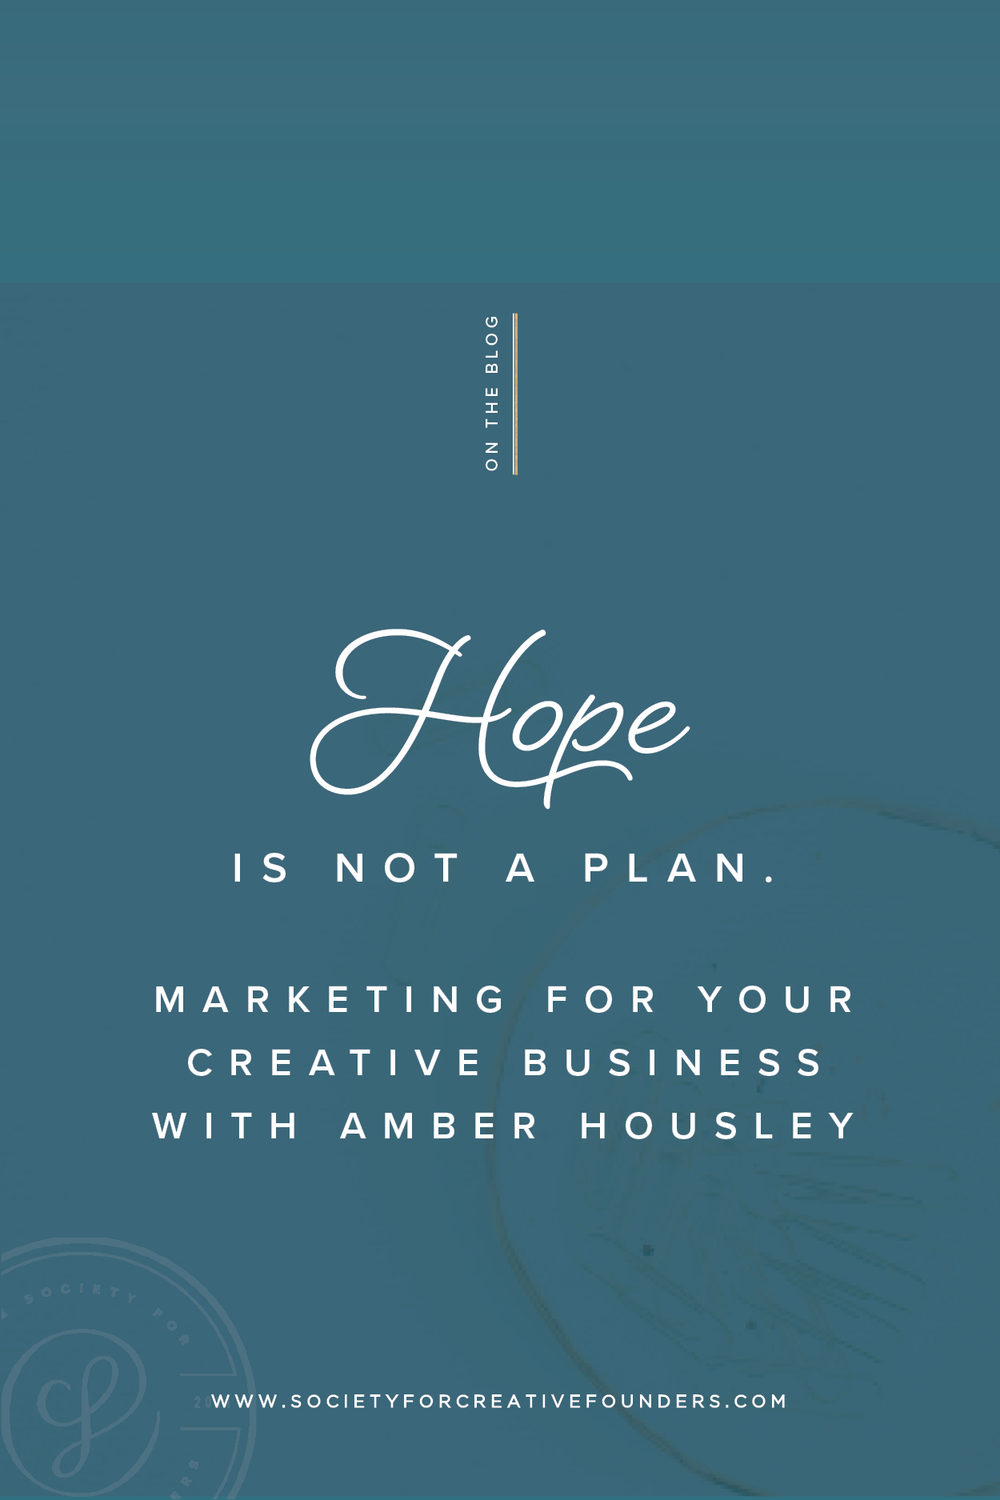 Marketing for your Creative Business with Amber Housley, a Guest Post about the Creative Founders Conference